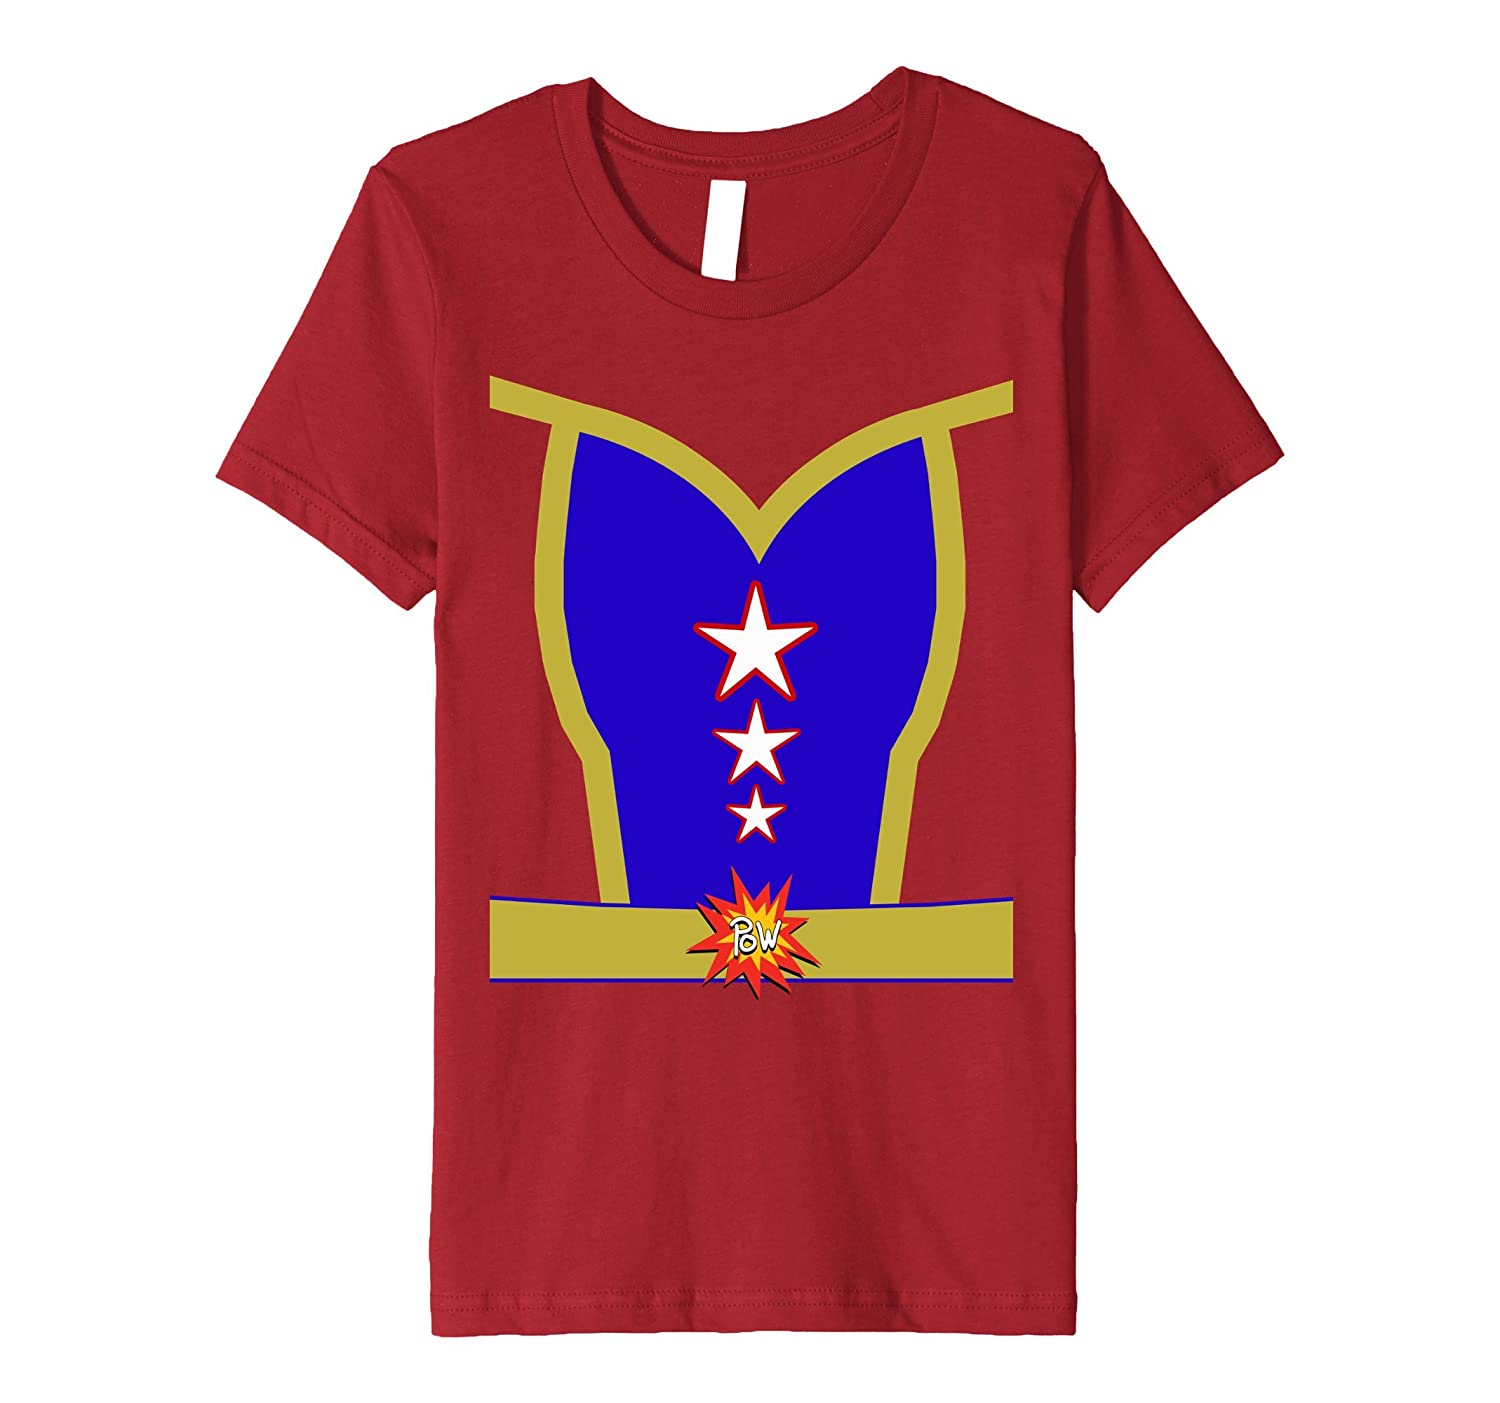 Female Superhero Halloween Costume Premium T-shirt